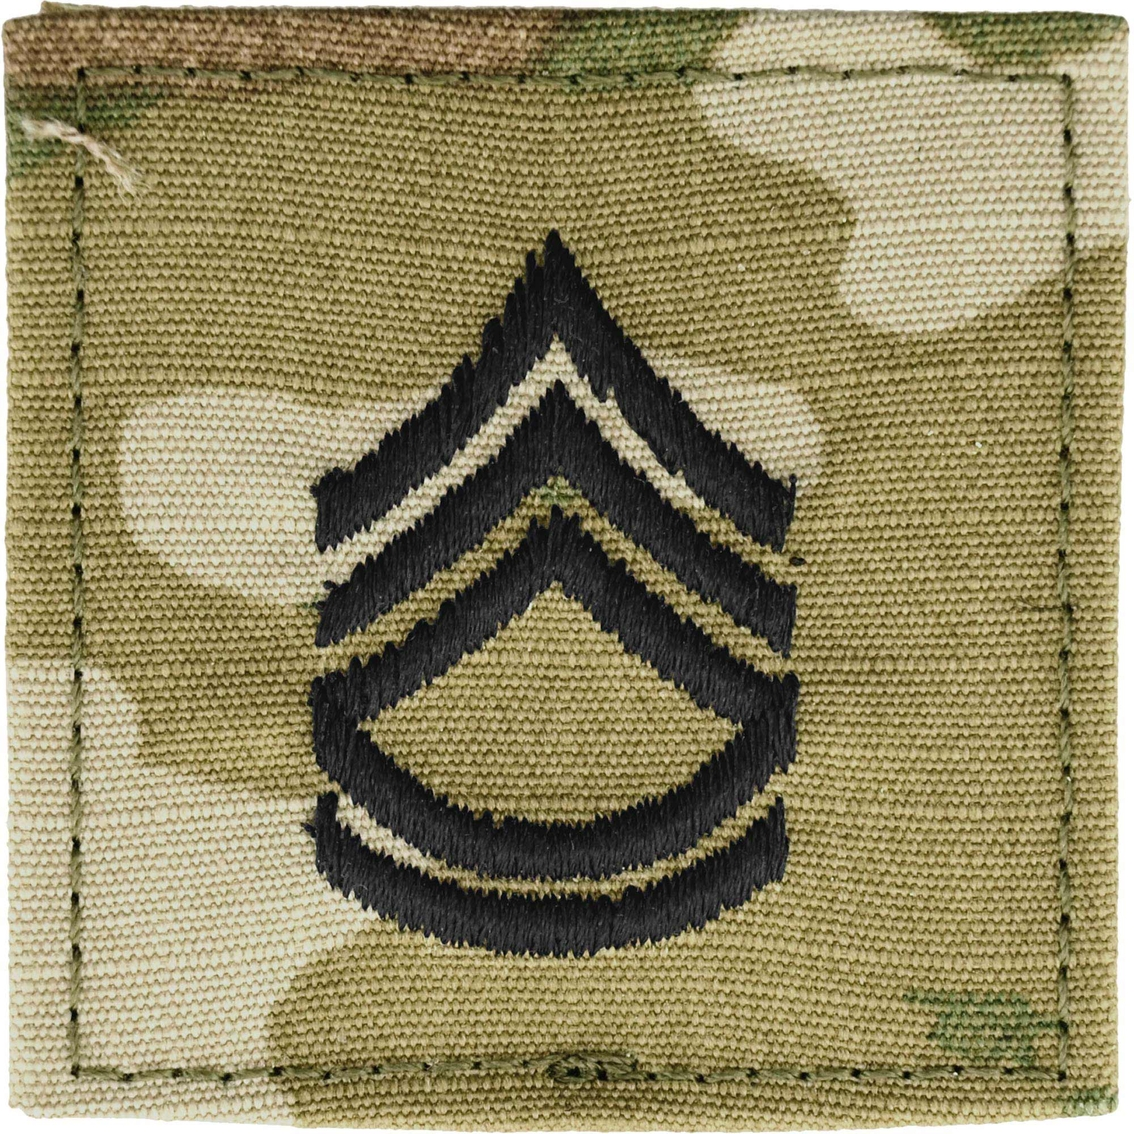 Army Rank Sergeant First Class (sfc) Velcro (ocp), 2 Qty Per Pkg ... clipart royalty free